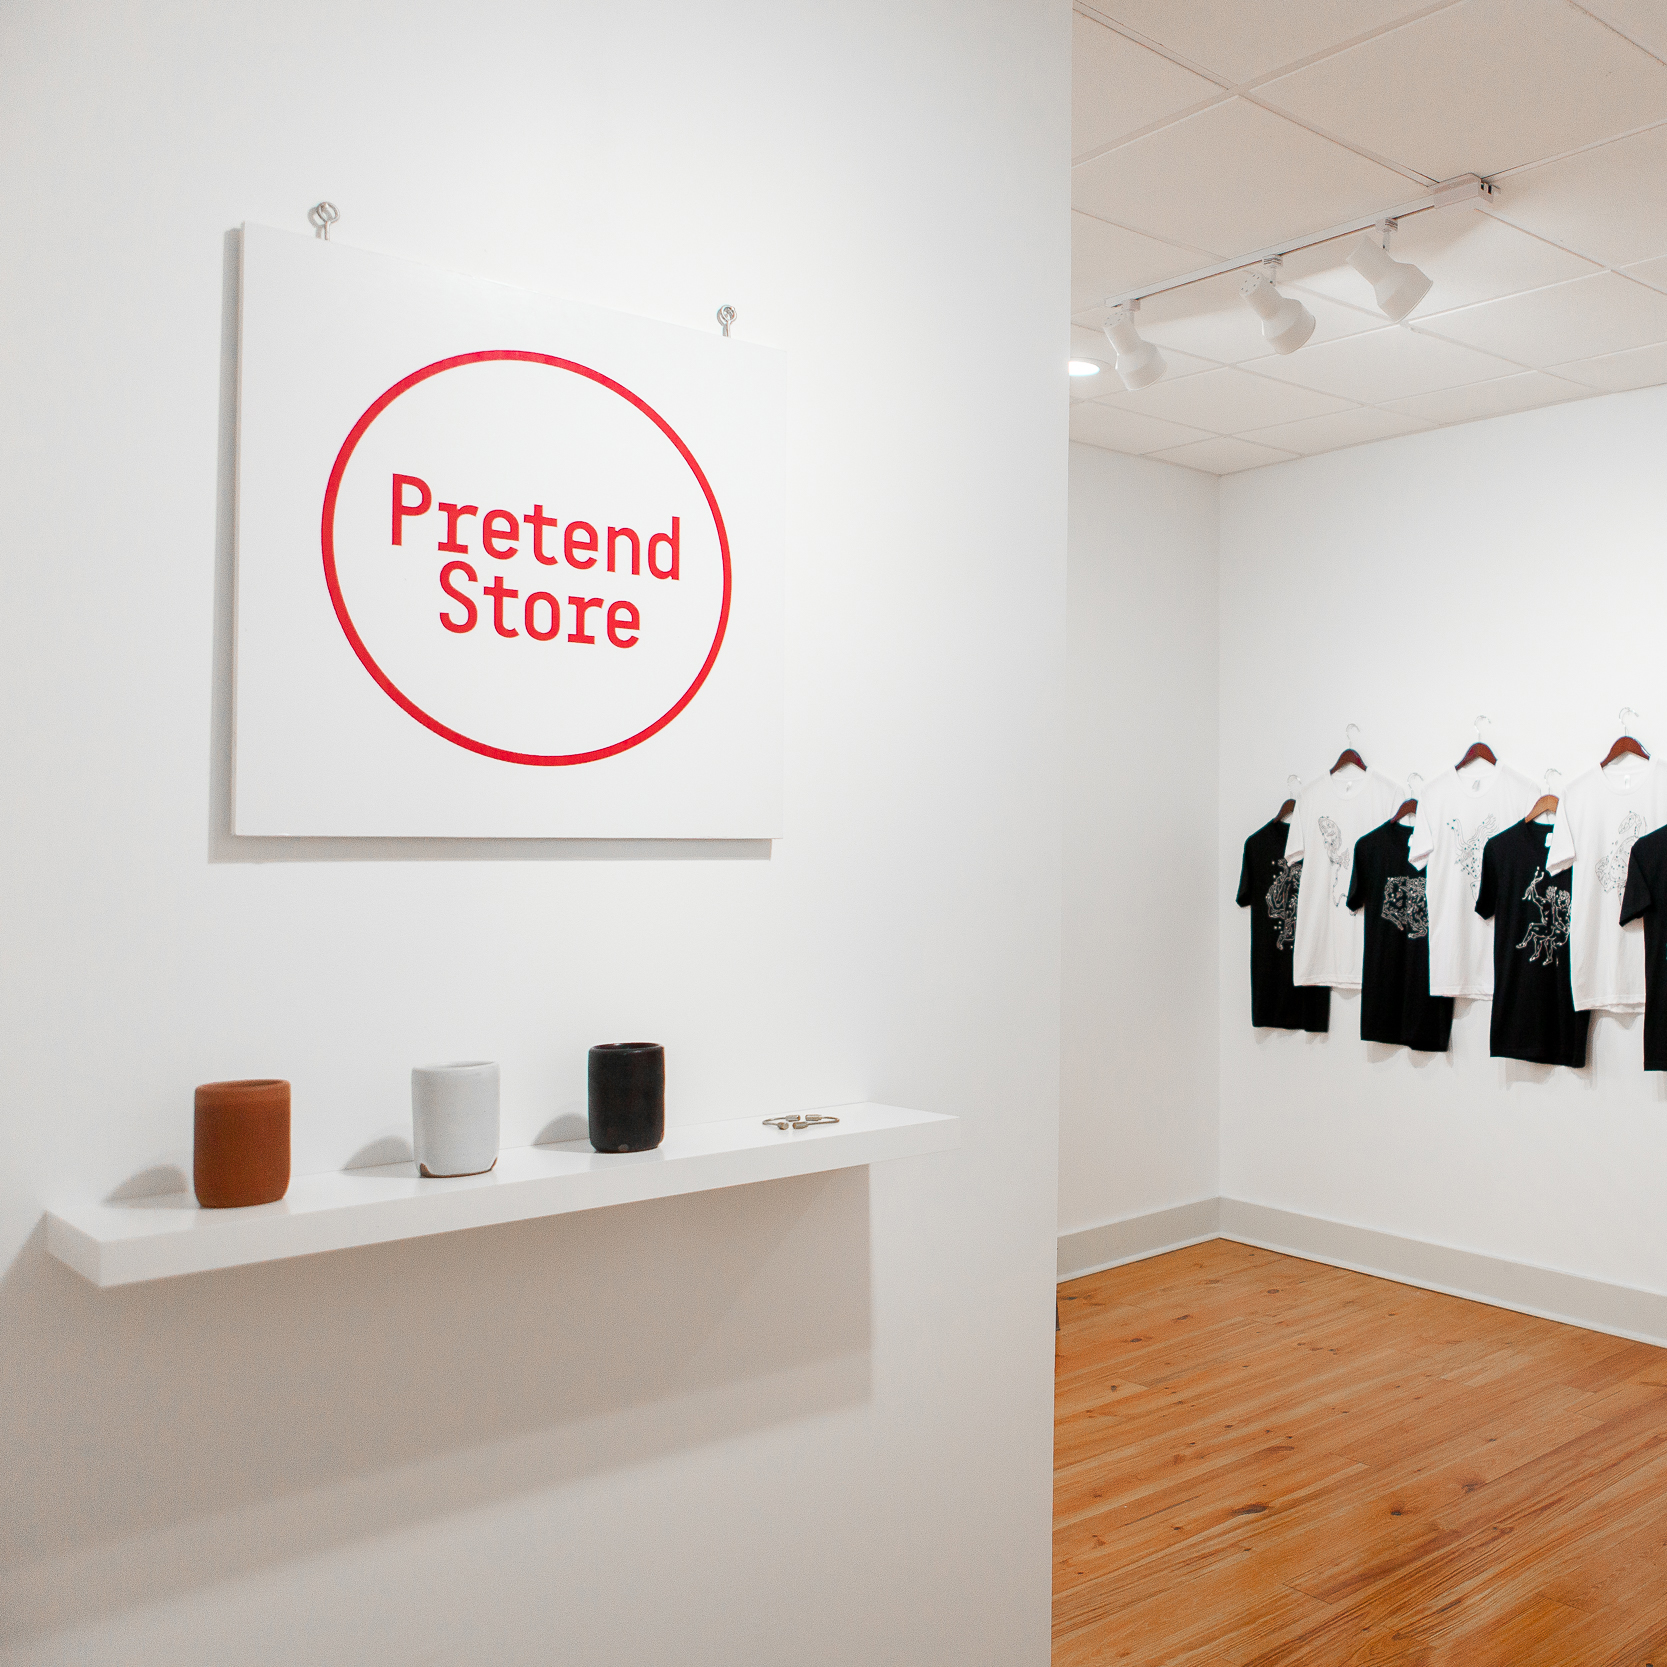 Pretend Store Pop-Up / Party on Friday